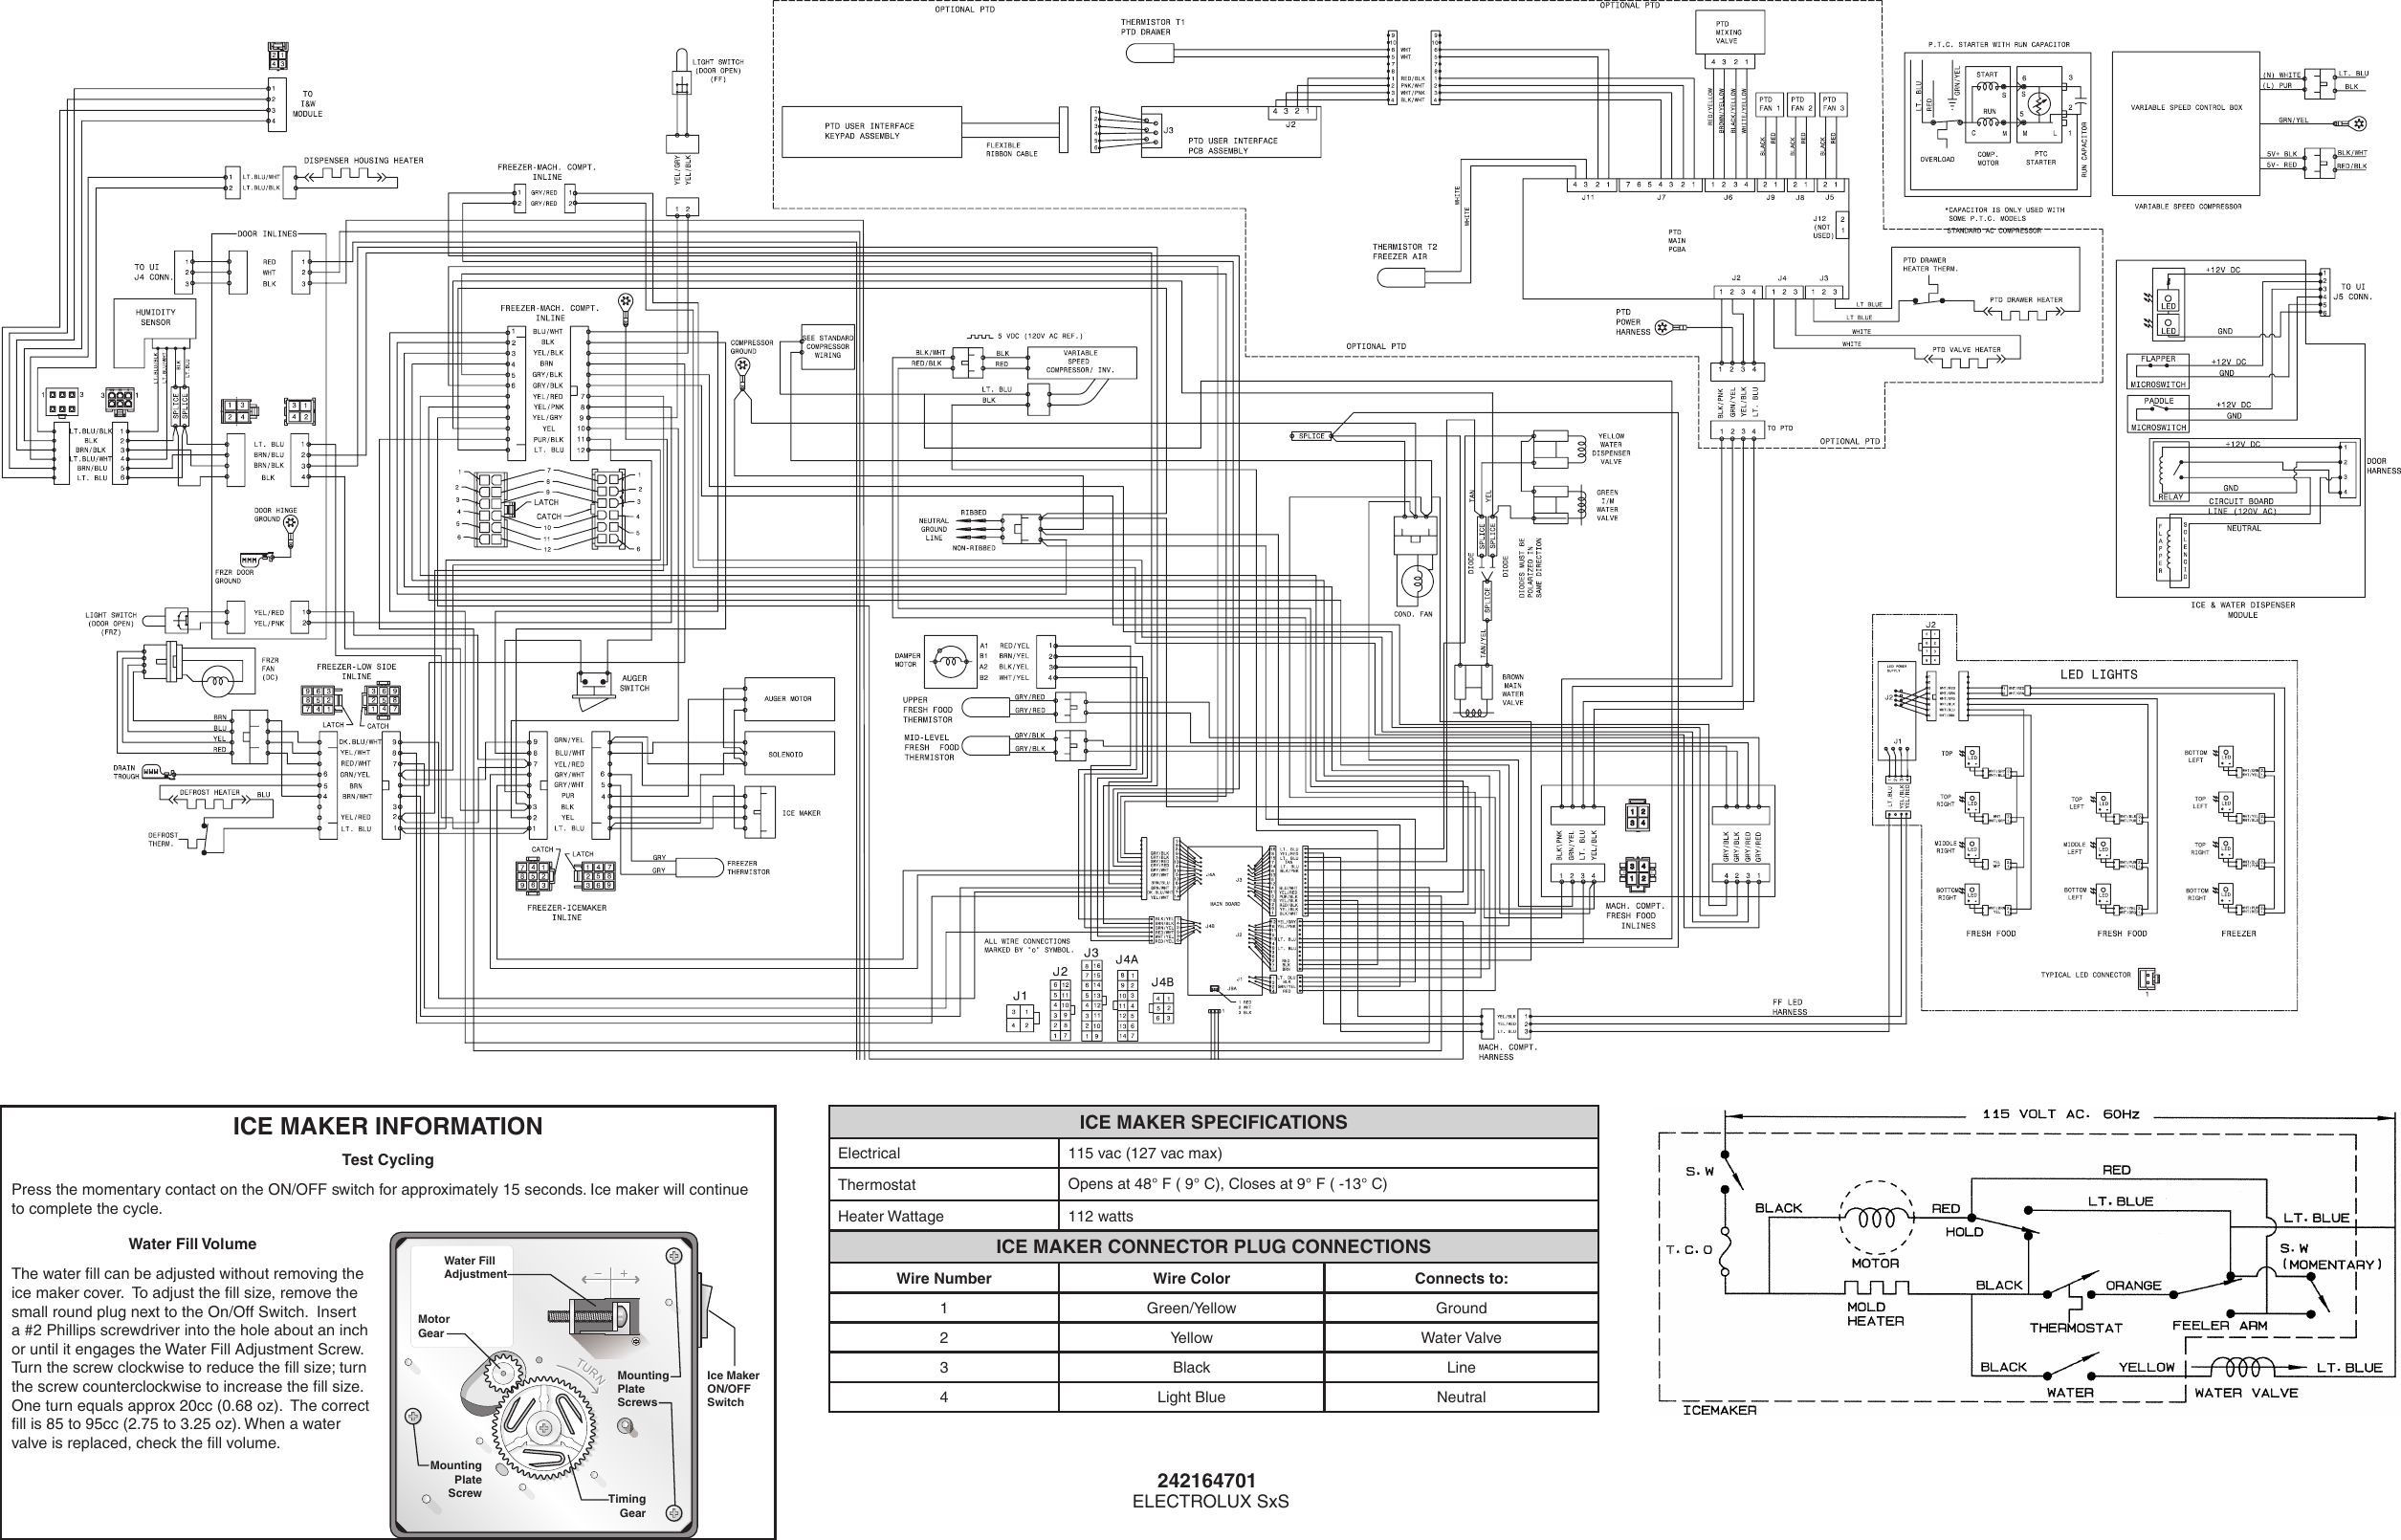 wiring diagram for counter electrolux counter depth side by refrigerator with iq touch wiring diagram for international 244 tractor electrolux counter depth side by